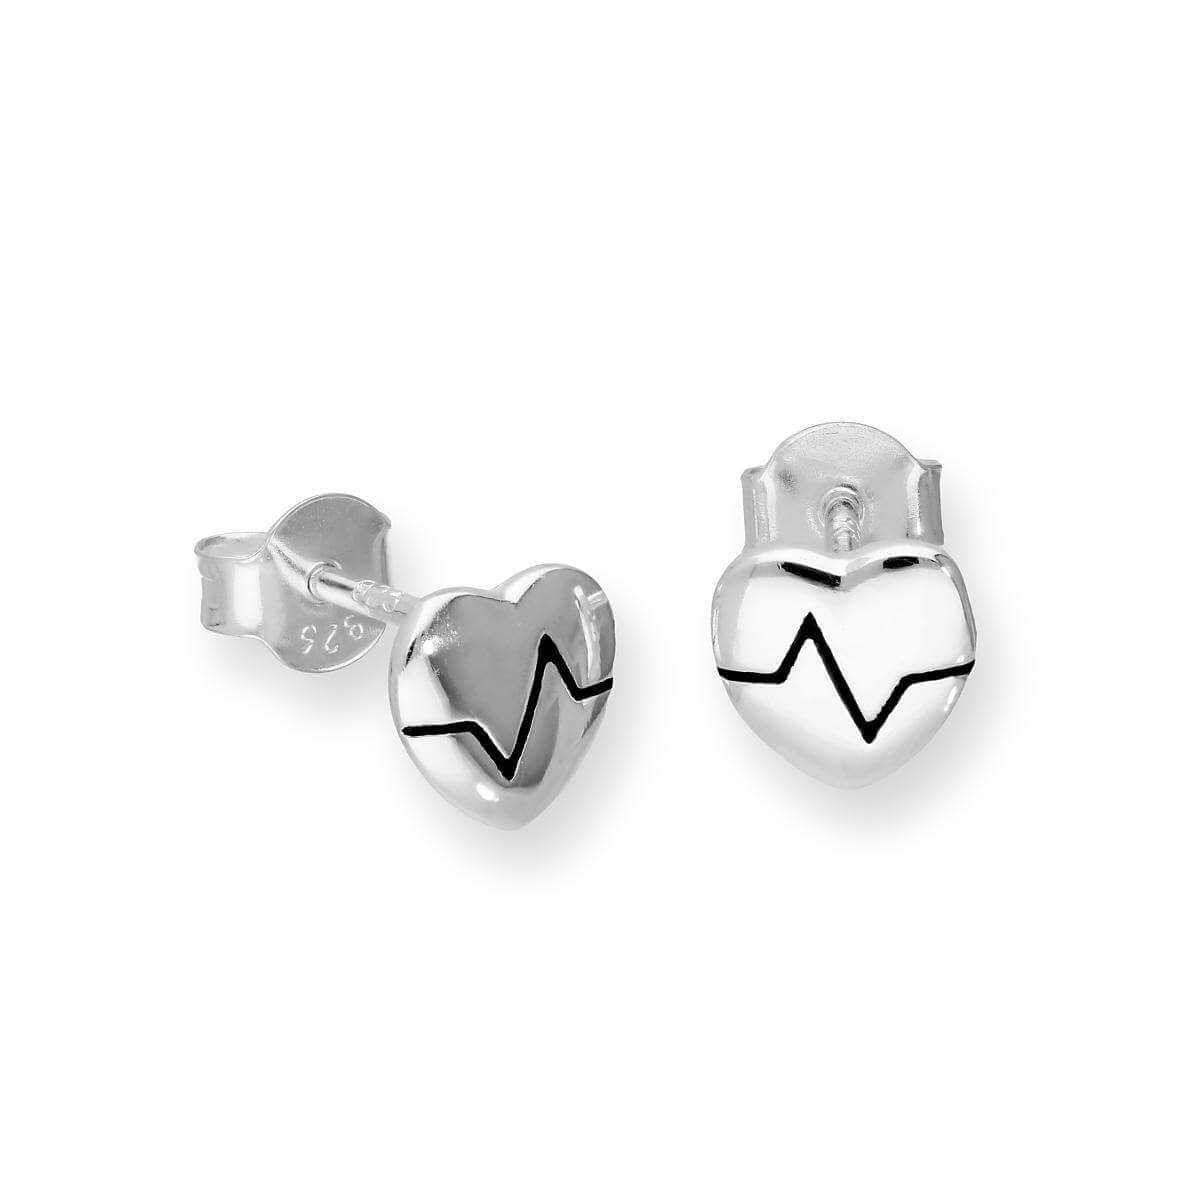 Sterling Silver Heart w Heartbeat Stud Earrings